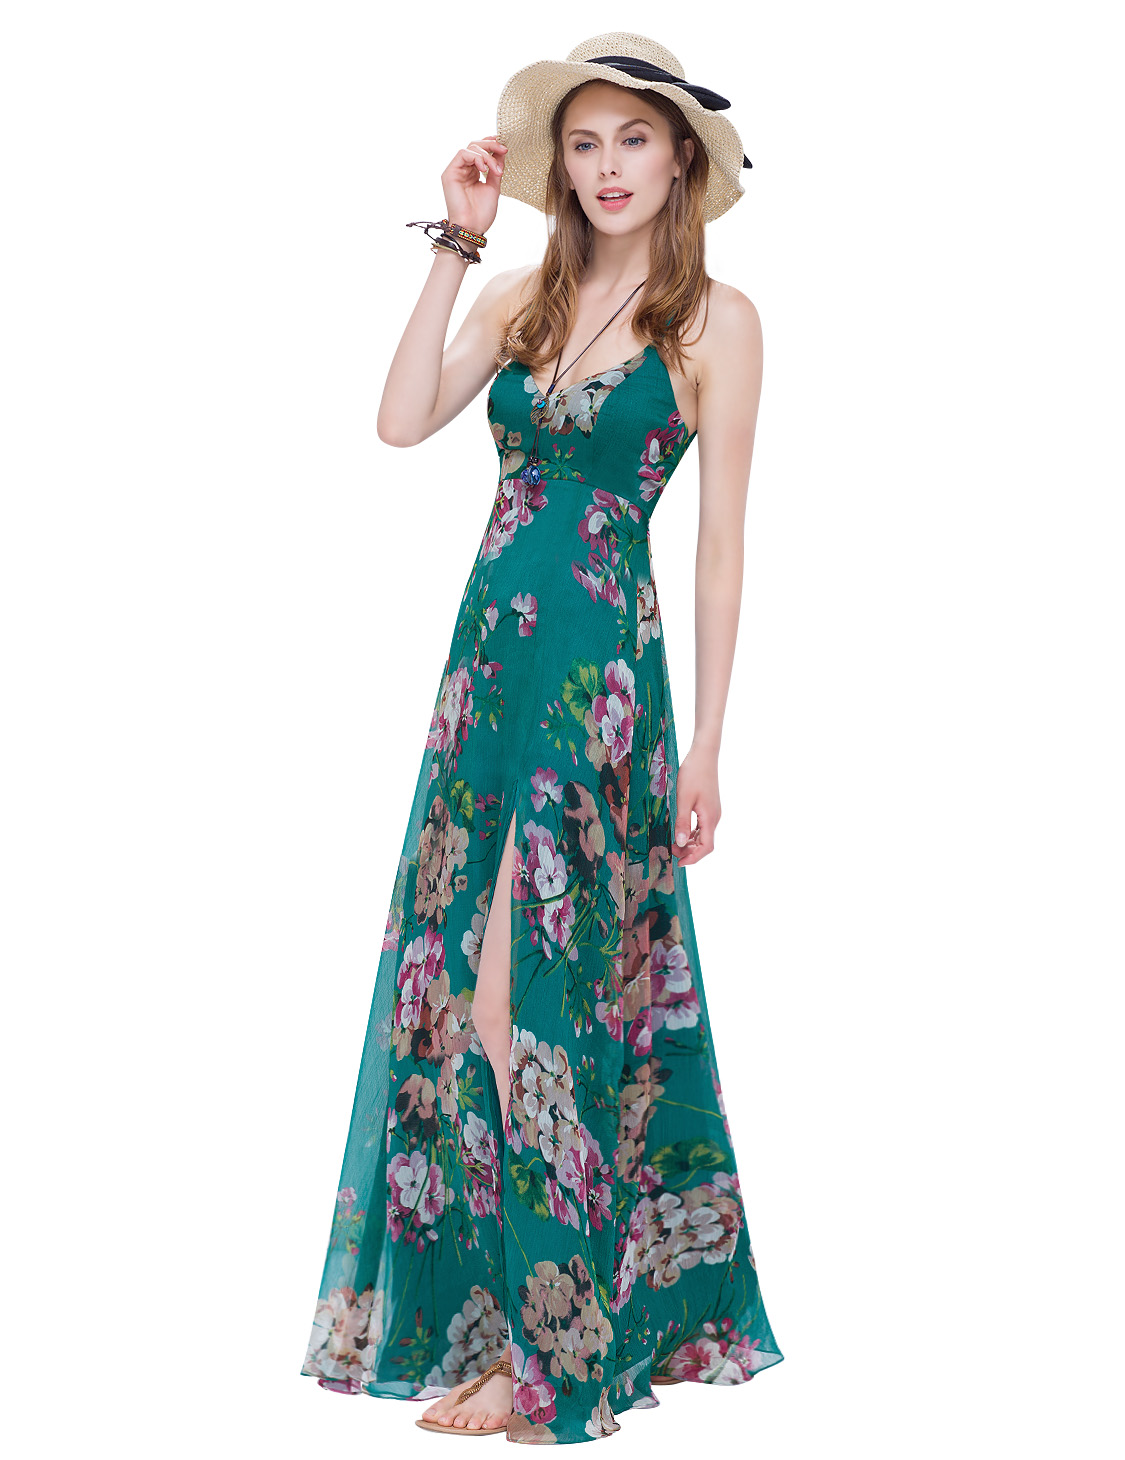 Alisa-Pan-Women-Long-Split-Summer-Beach-Dress-Maxi-Floral-Holiday-Dress-08906